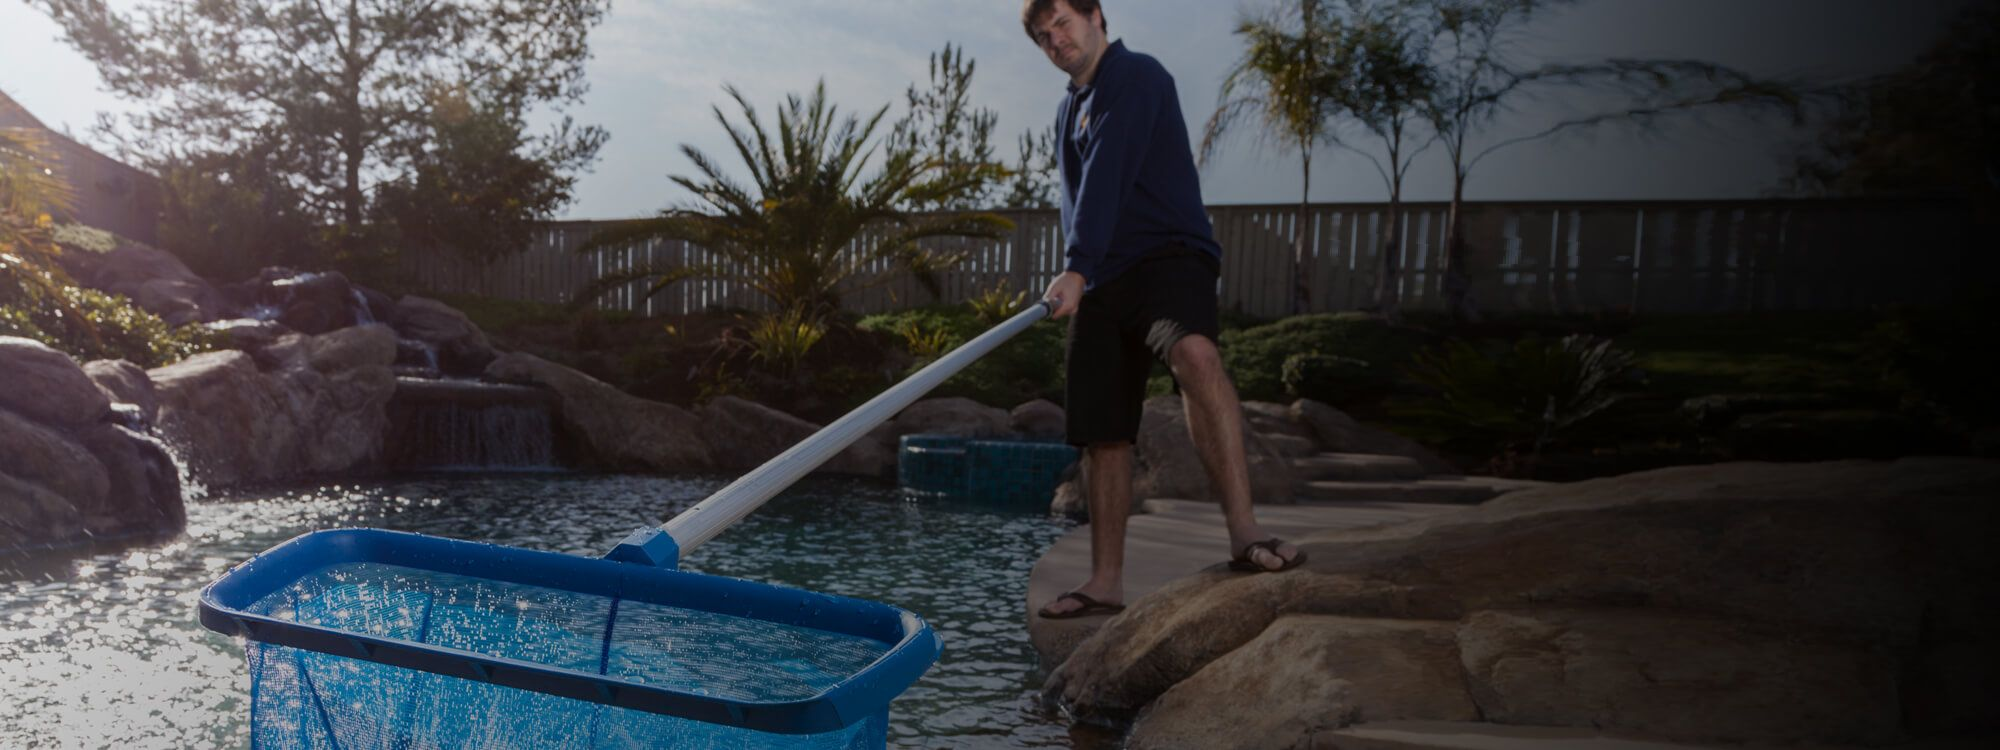 Pool service experts HB Pools, cleaning a local pool and getting it clean for springtime!